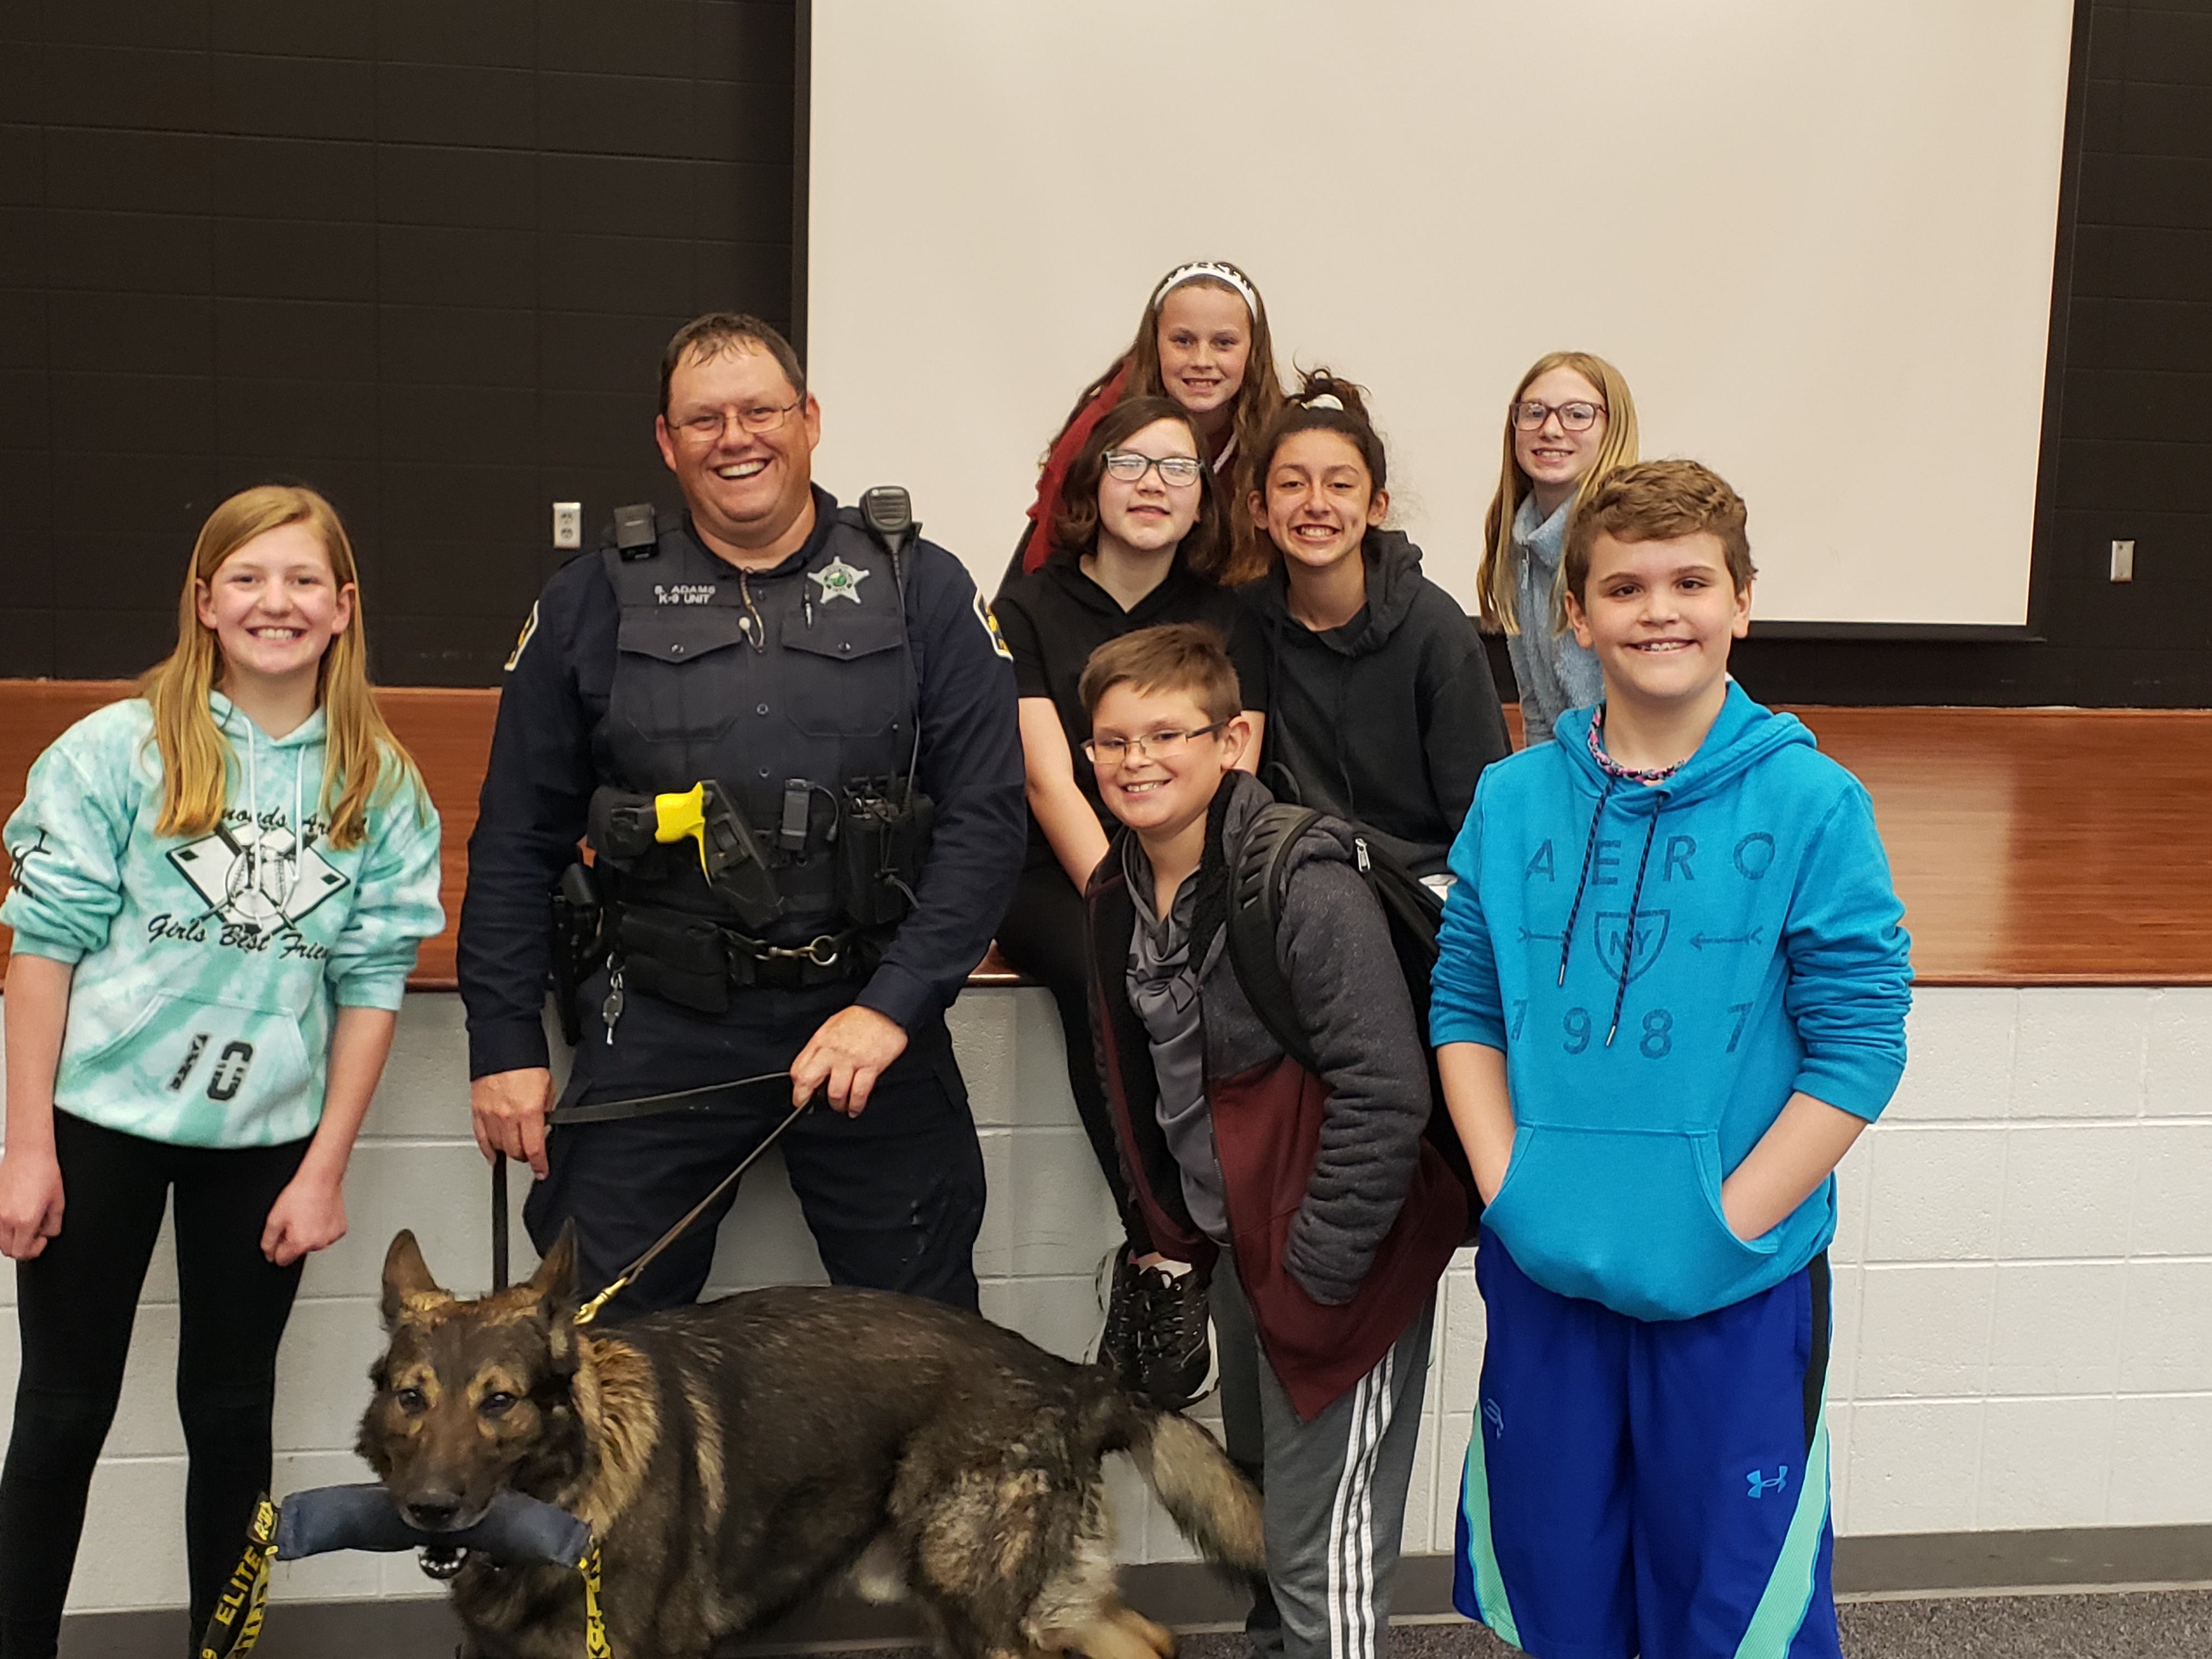 Clark's Paws for A Cause hosted an event 4/29/19. St. John Officer Shane Adams conducted several search demonstrations with the student's assistance as well as educated club members about the K-9 program.